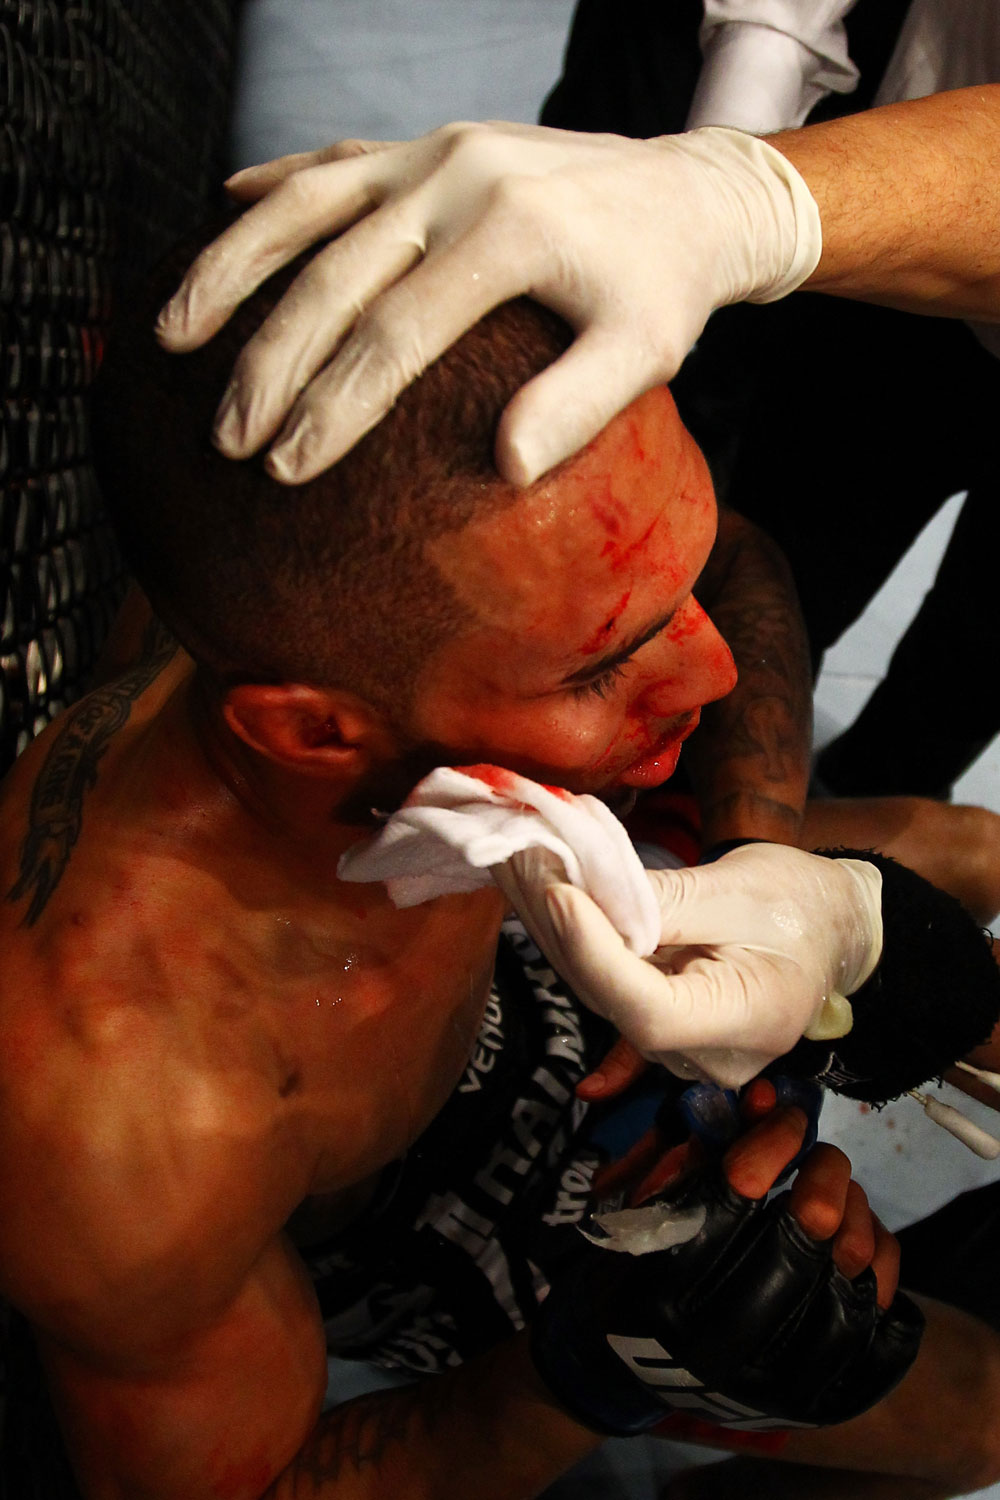 ATLANTA, GA - APRIL 21:  Che Mills recieves medical attention during his welterweight bout against Rory MacDonald for UFC 145 at Philips Arena on April 21, 2012 in Atlanta, Georgia.  (Photo by Al Bello/Zuffa LLC/Zuffa LLC via Getty Images)